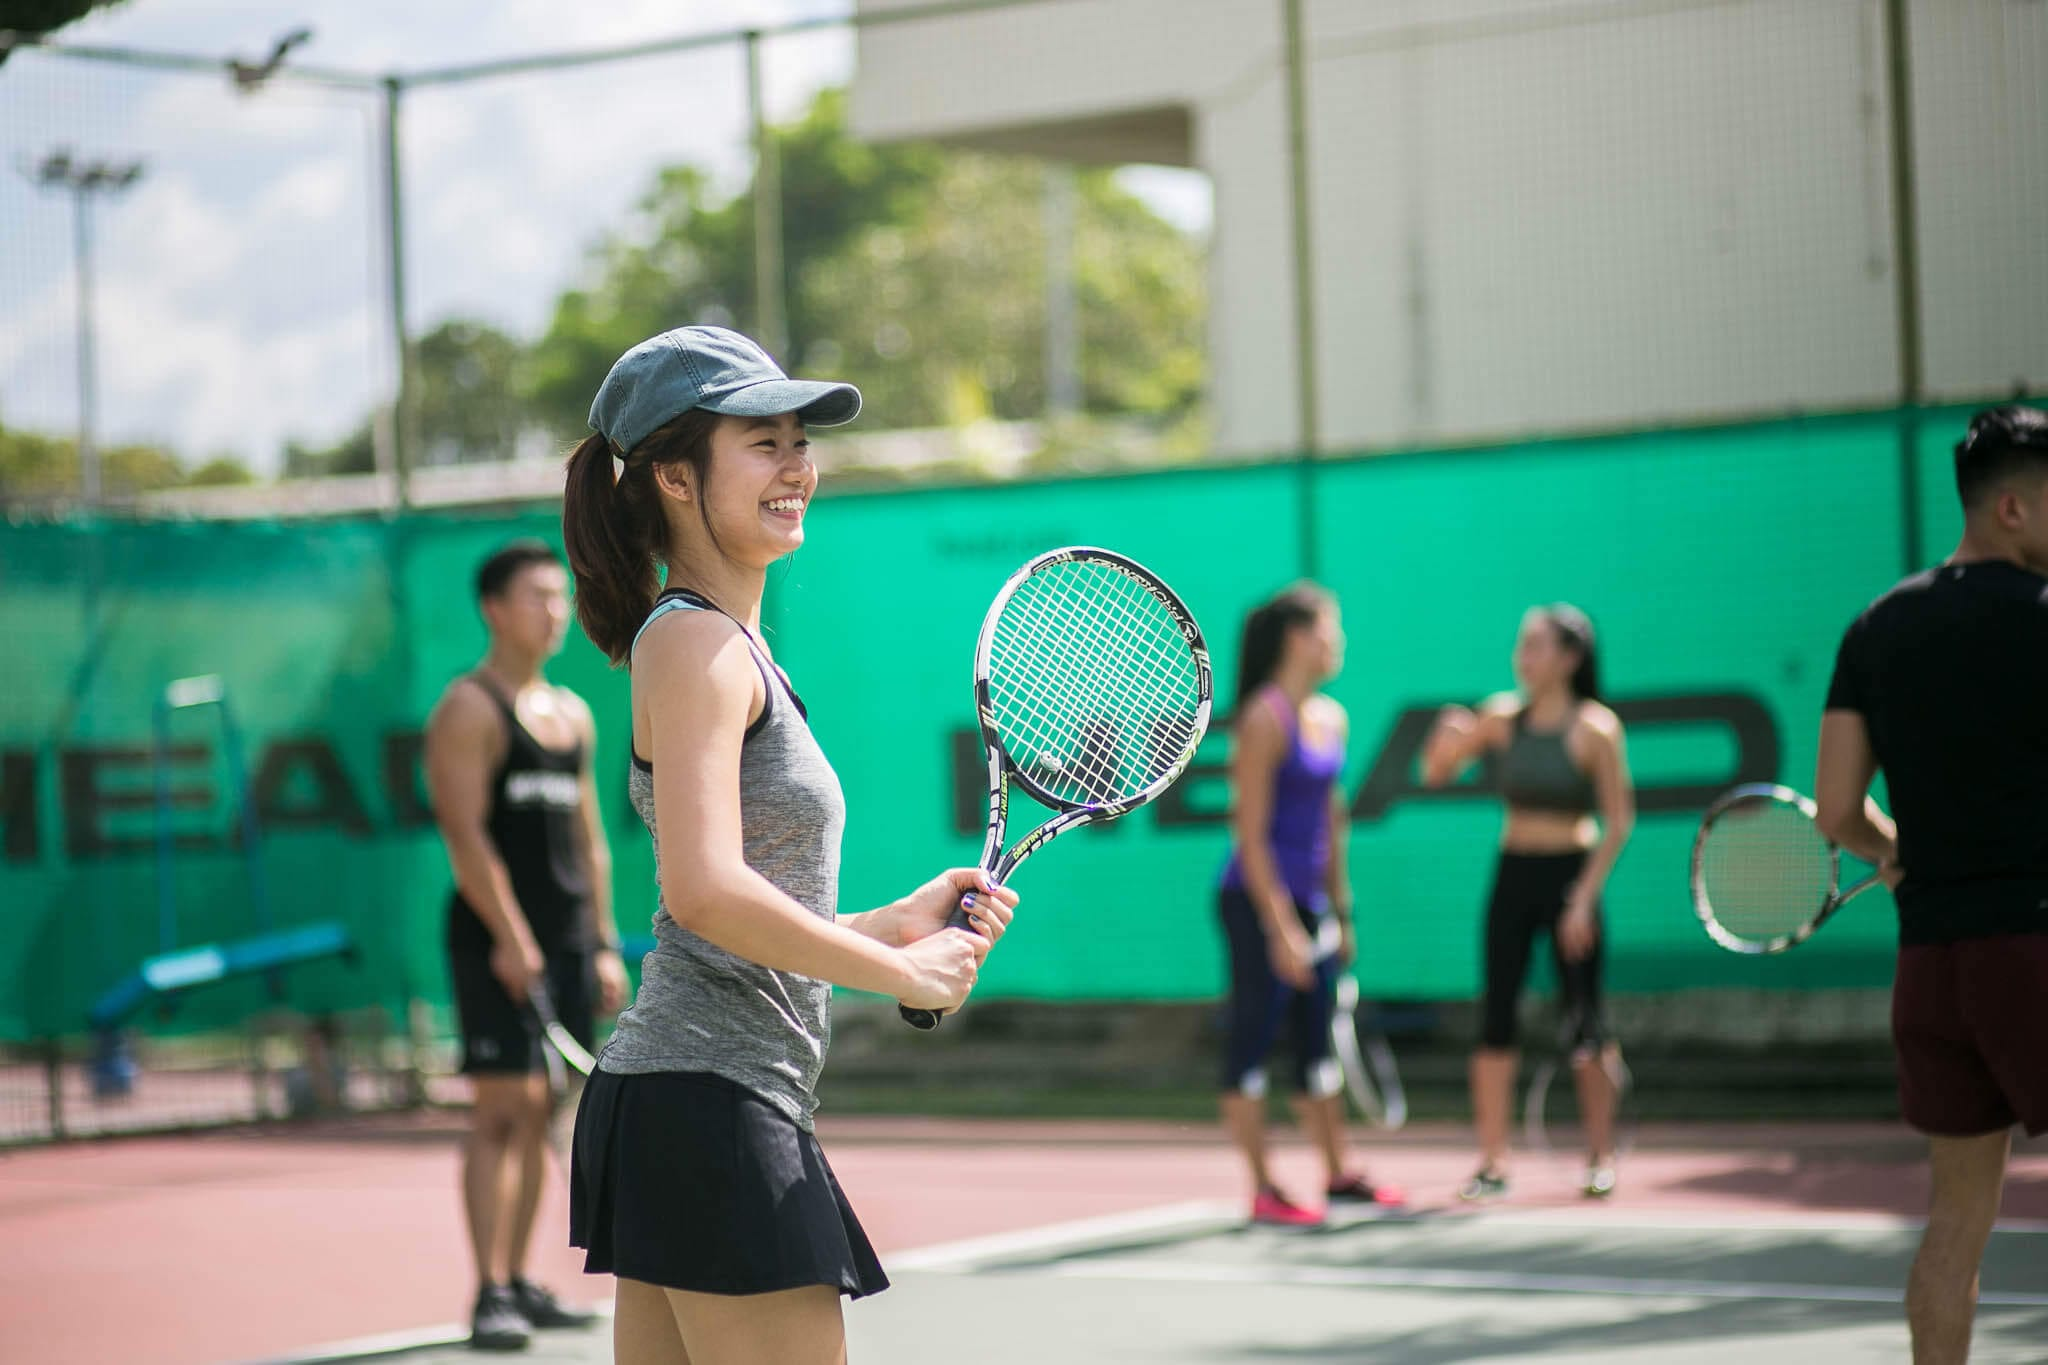 Prp For Tennis Elbow